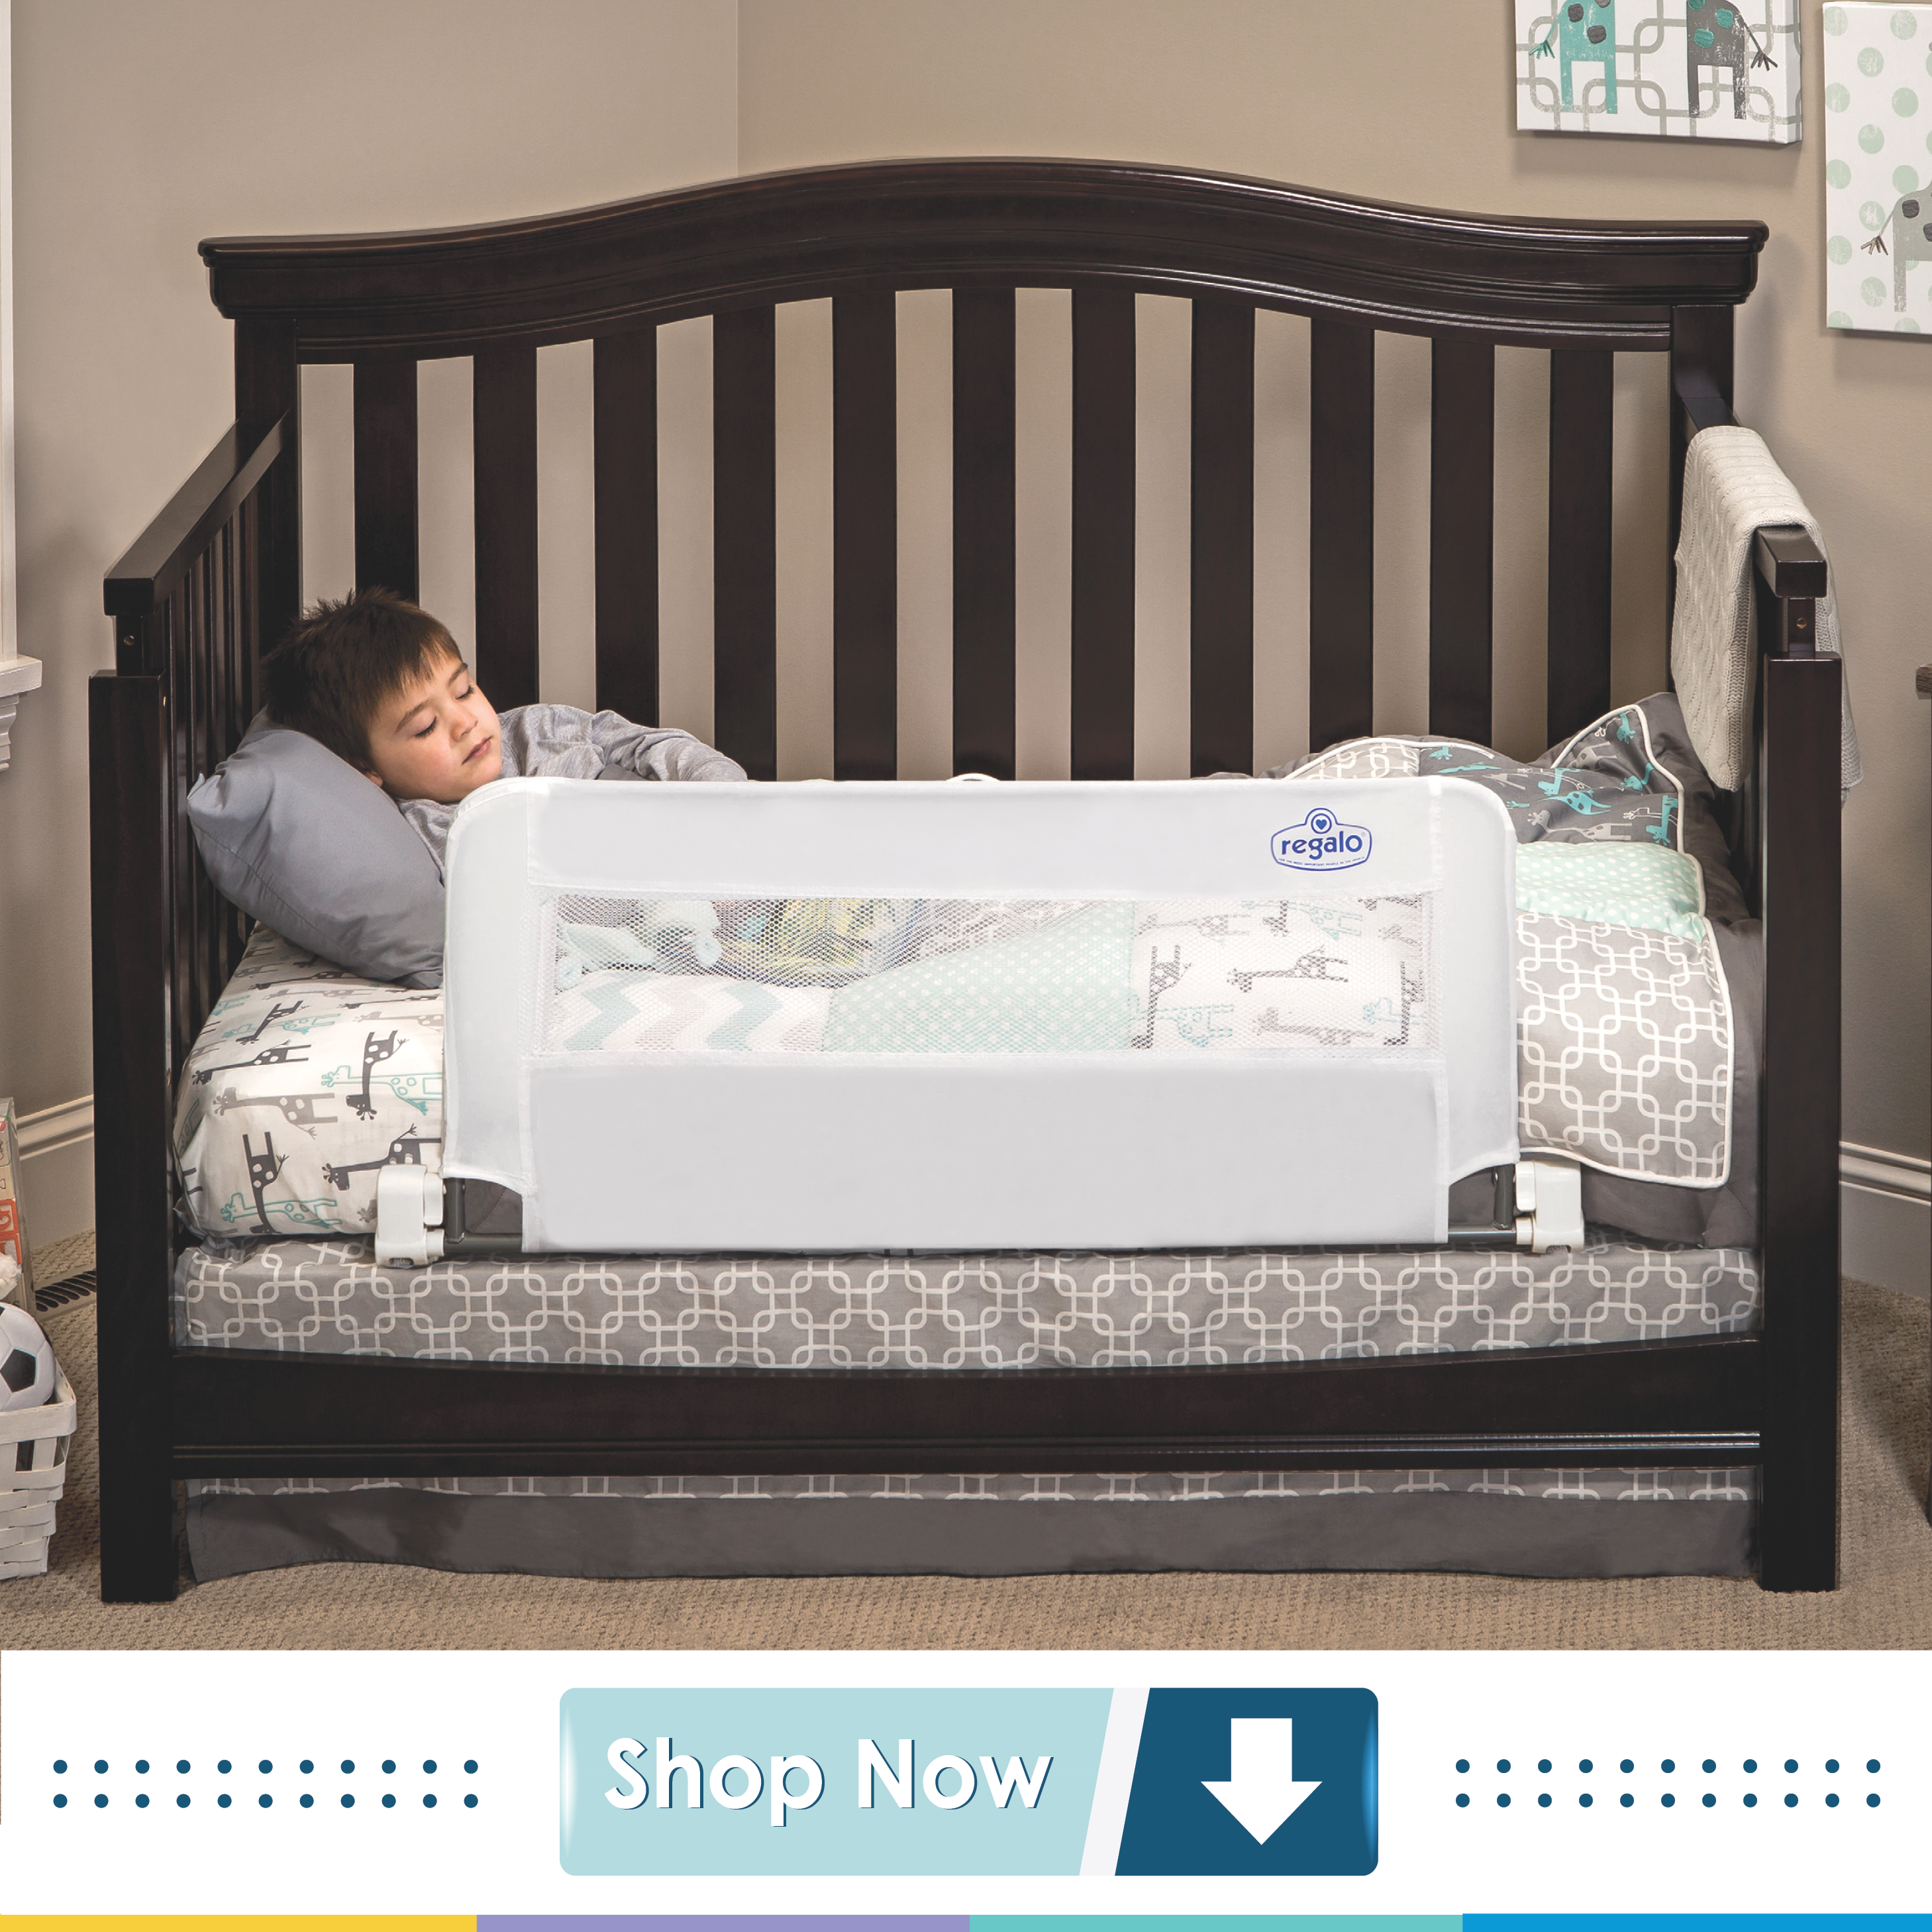 Baby bed that connects to parents bed - Most Popular Posts